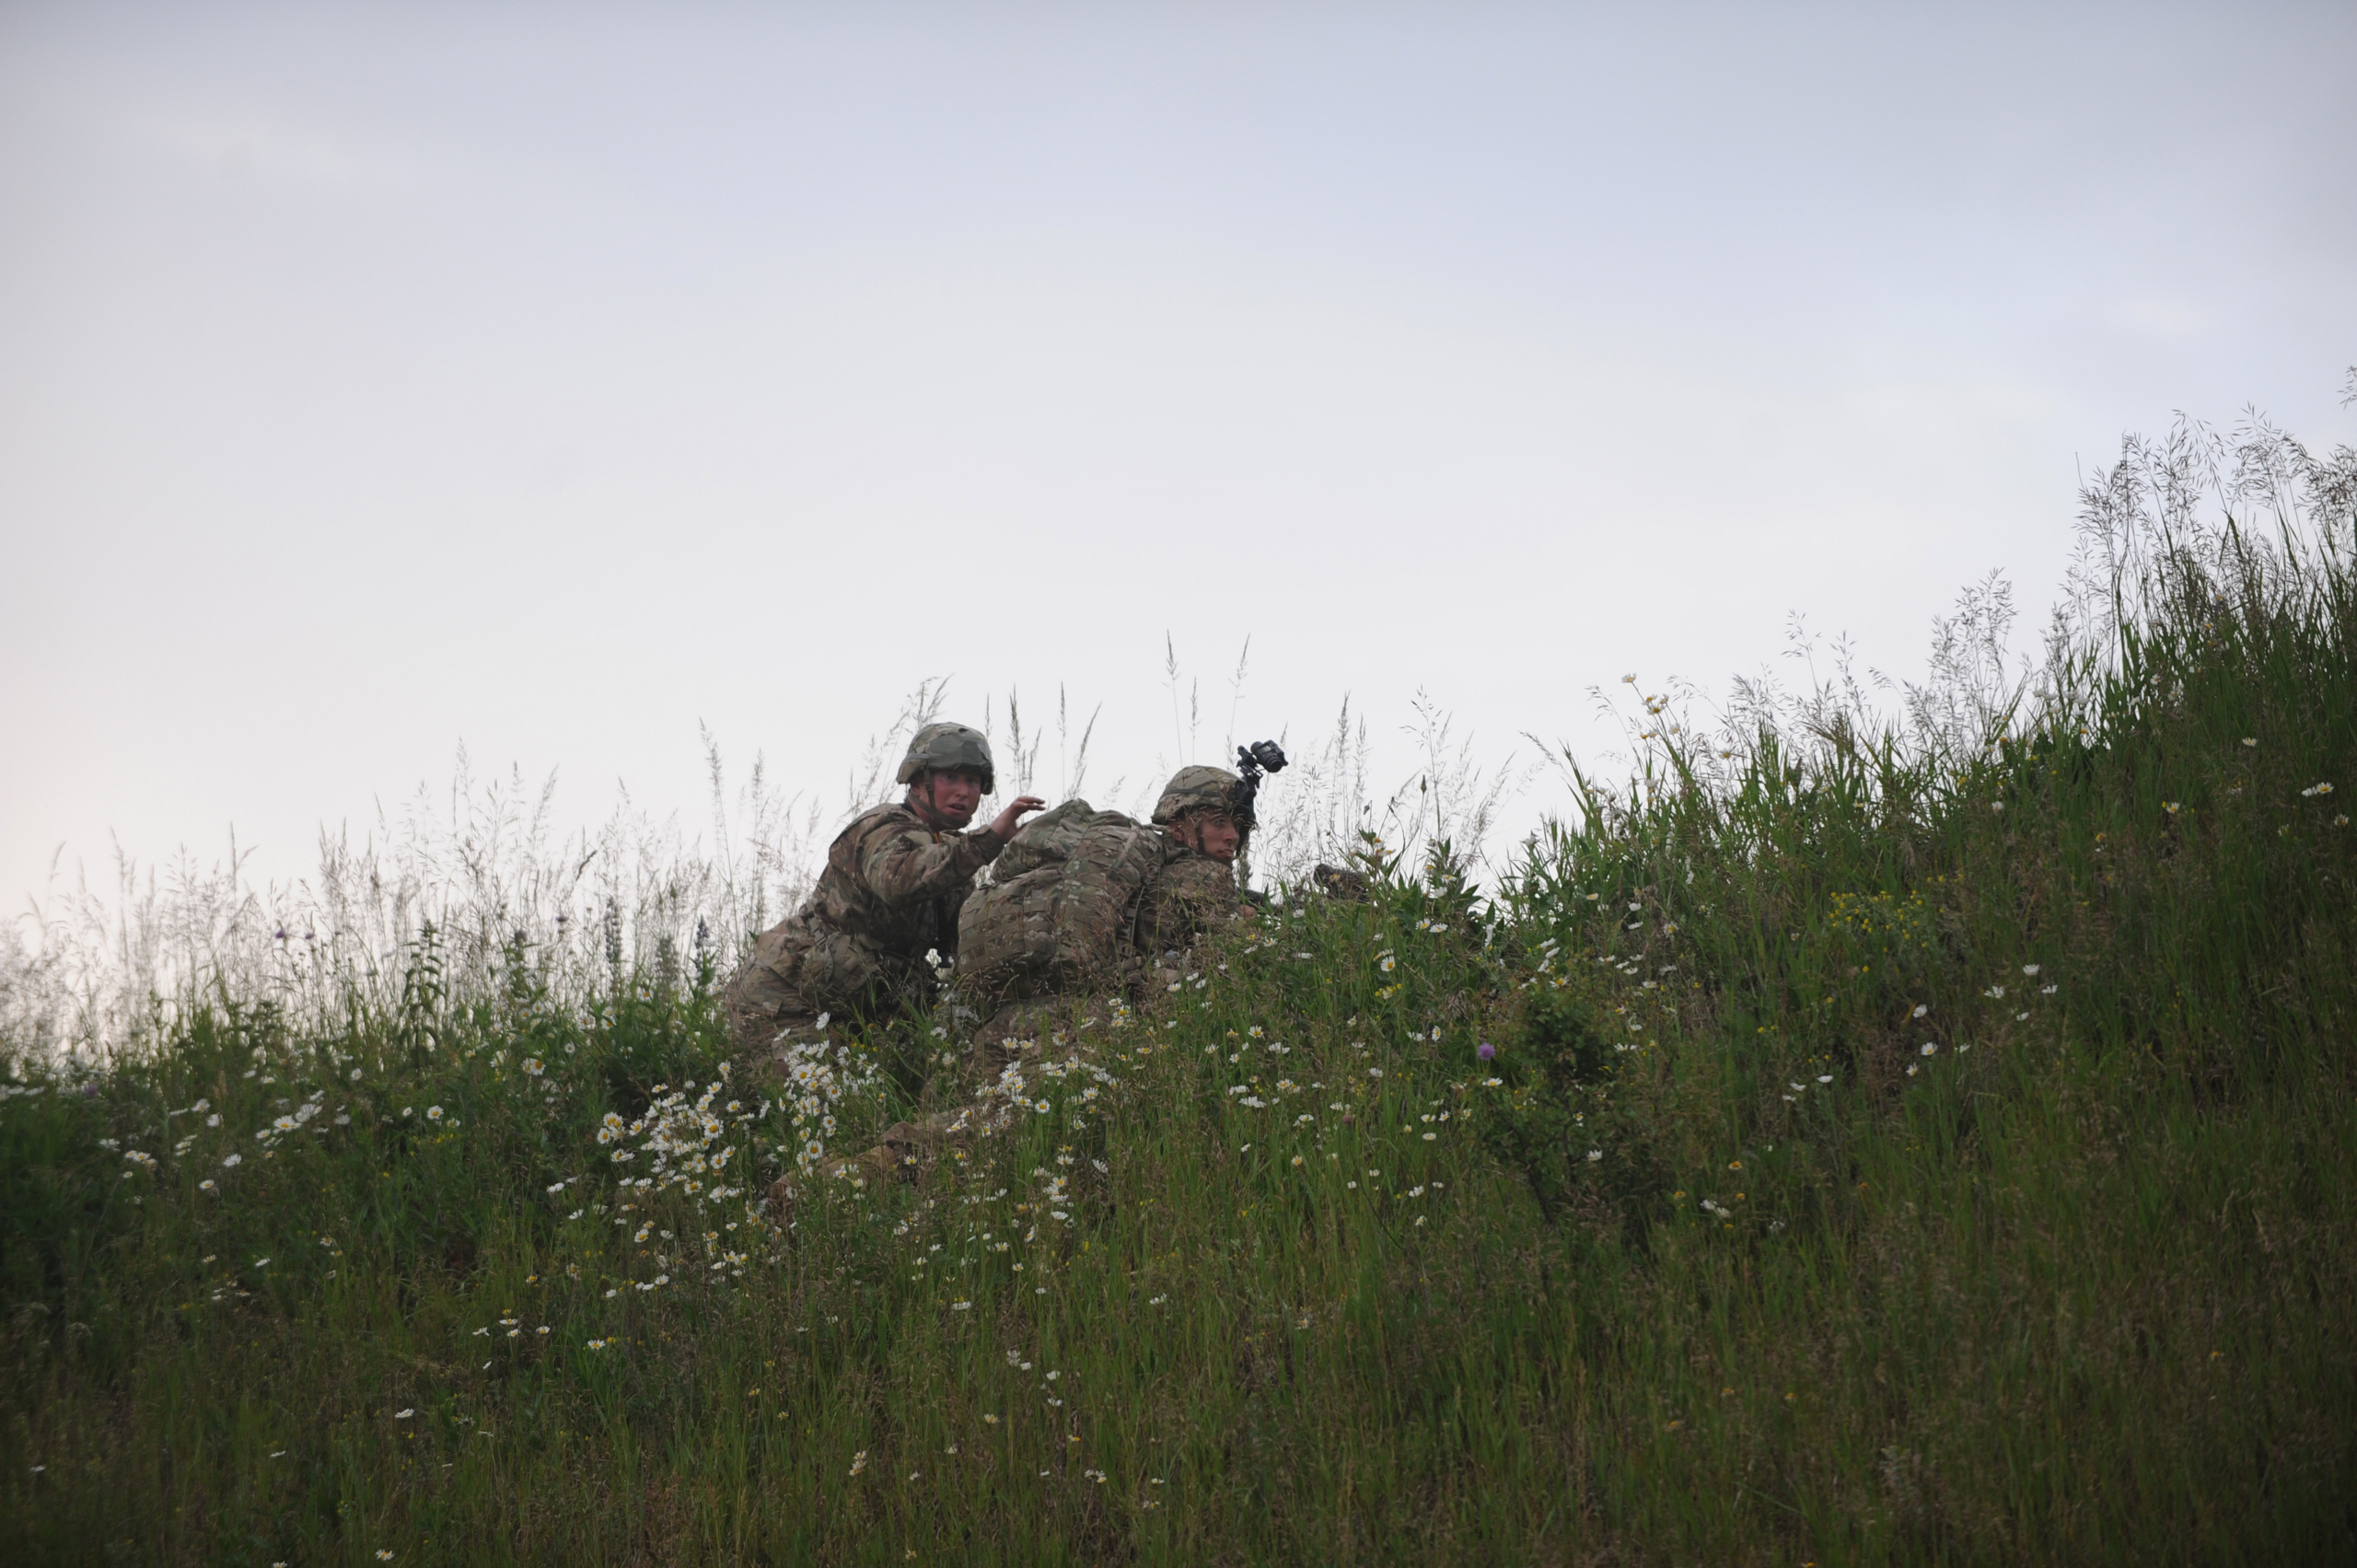 American soldiers with the 173rd Airborne, First Battalion, 503 Infantry Regiment maintain their position on a grassy knoll after parachuting in from a C-130 during an airfield seizure exercise on the Swidwin Airfield in Poland on June 16, 2015.